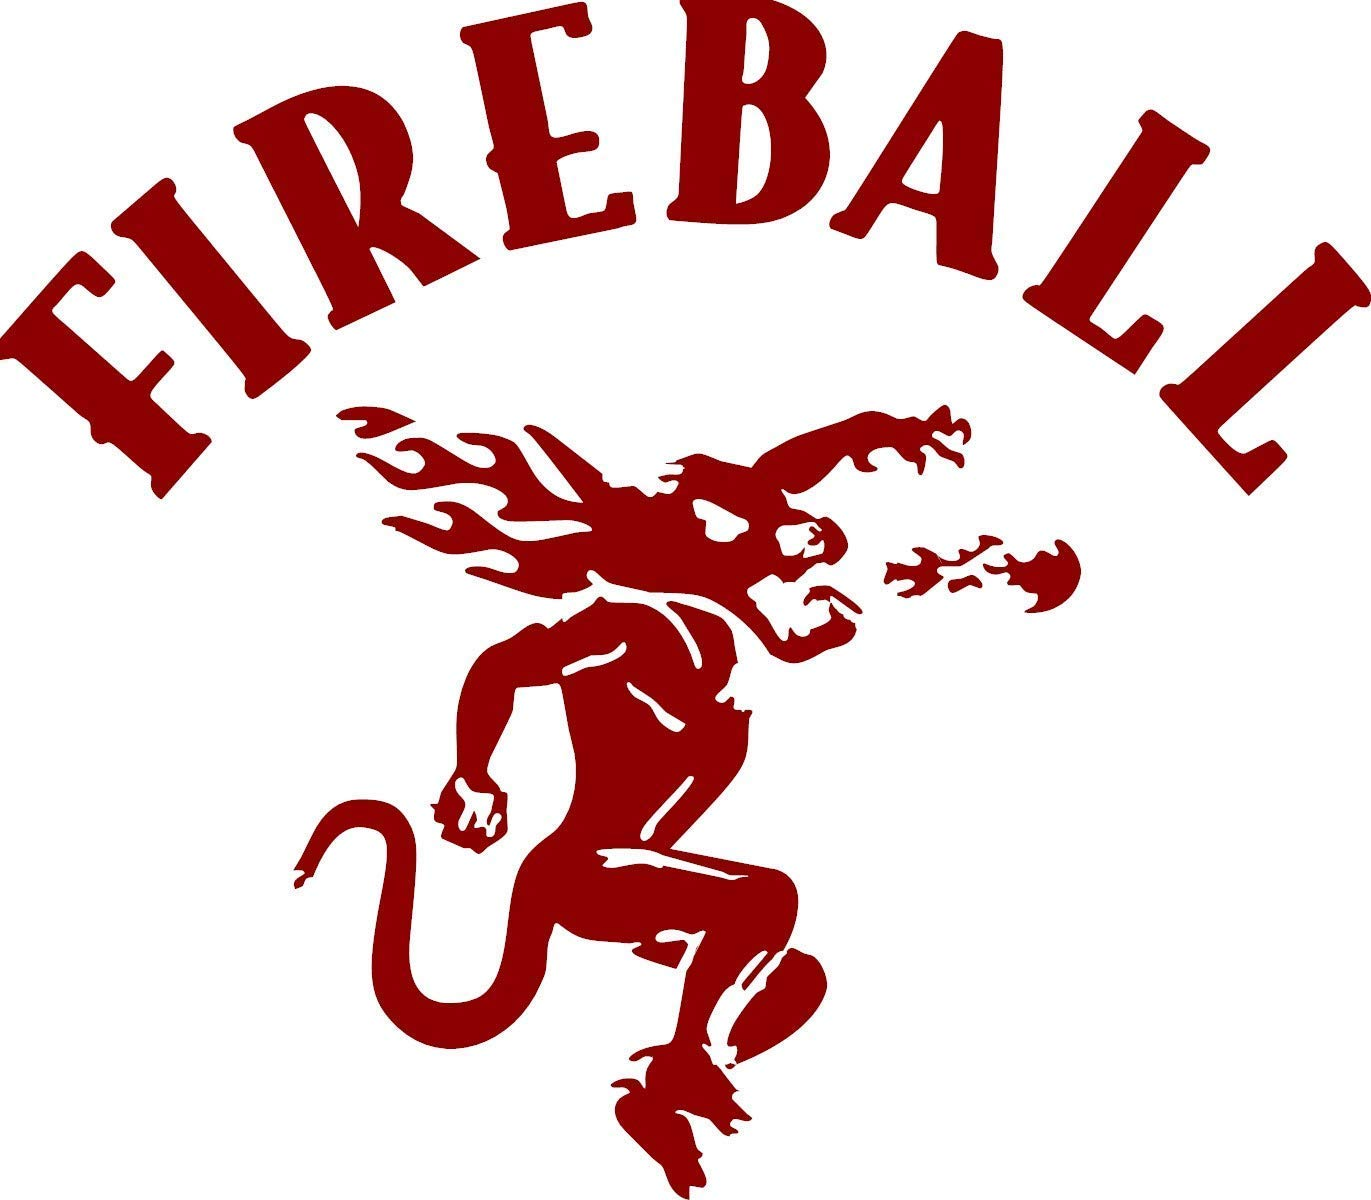 COMPATIBLE Max 84% OFF FIREBALL DECAL WISKEY STICKER 4 years warranty